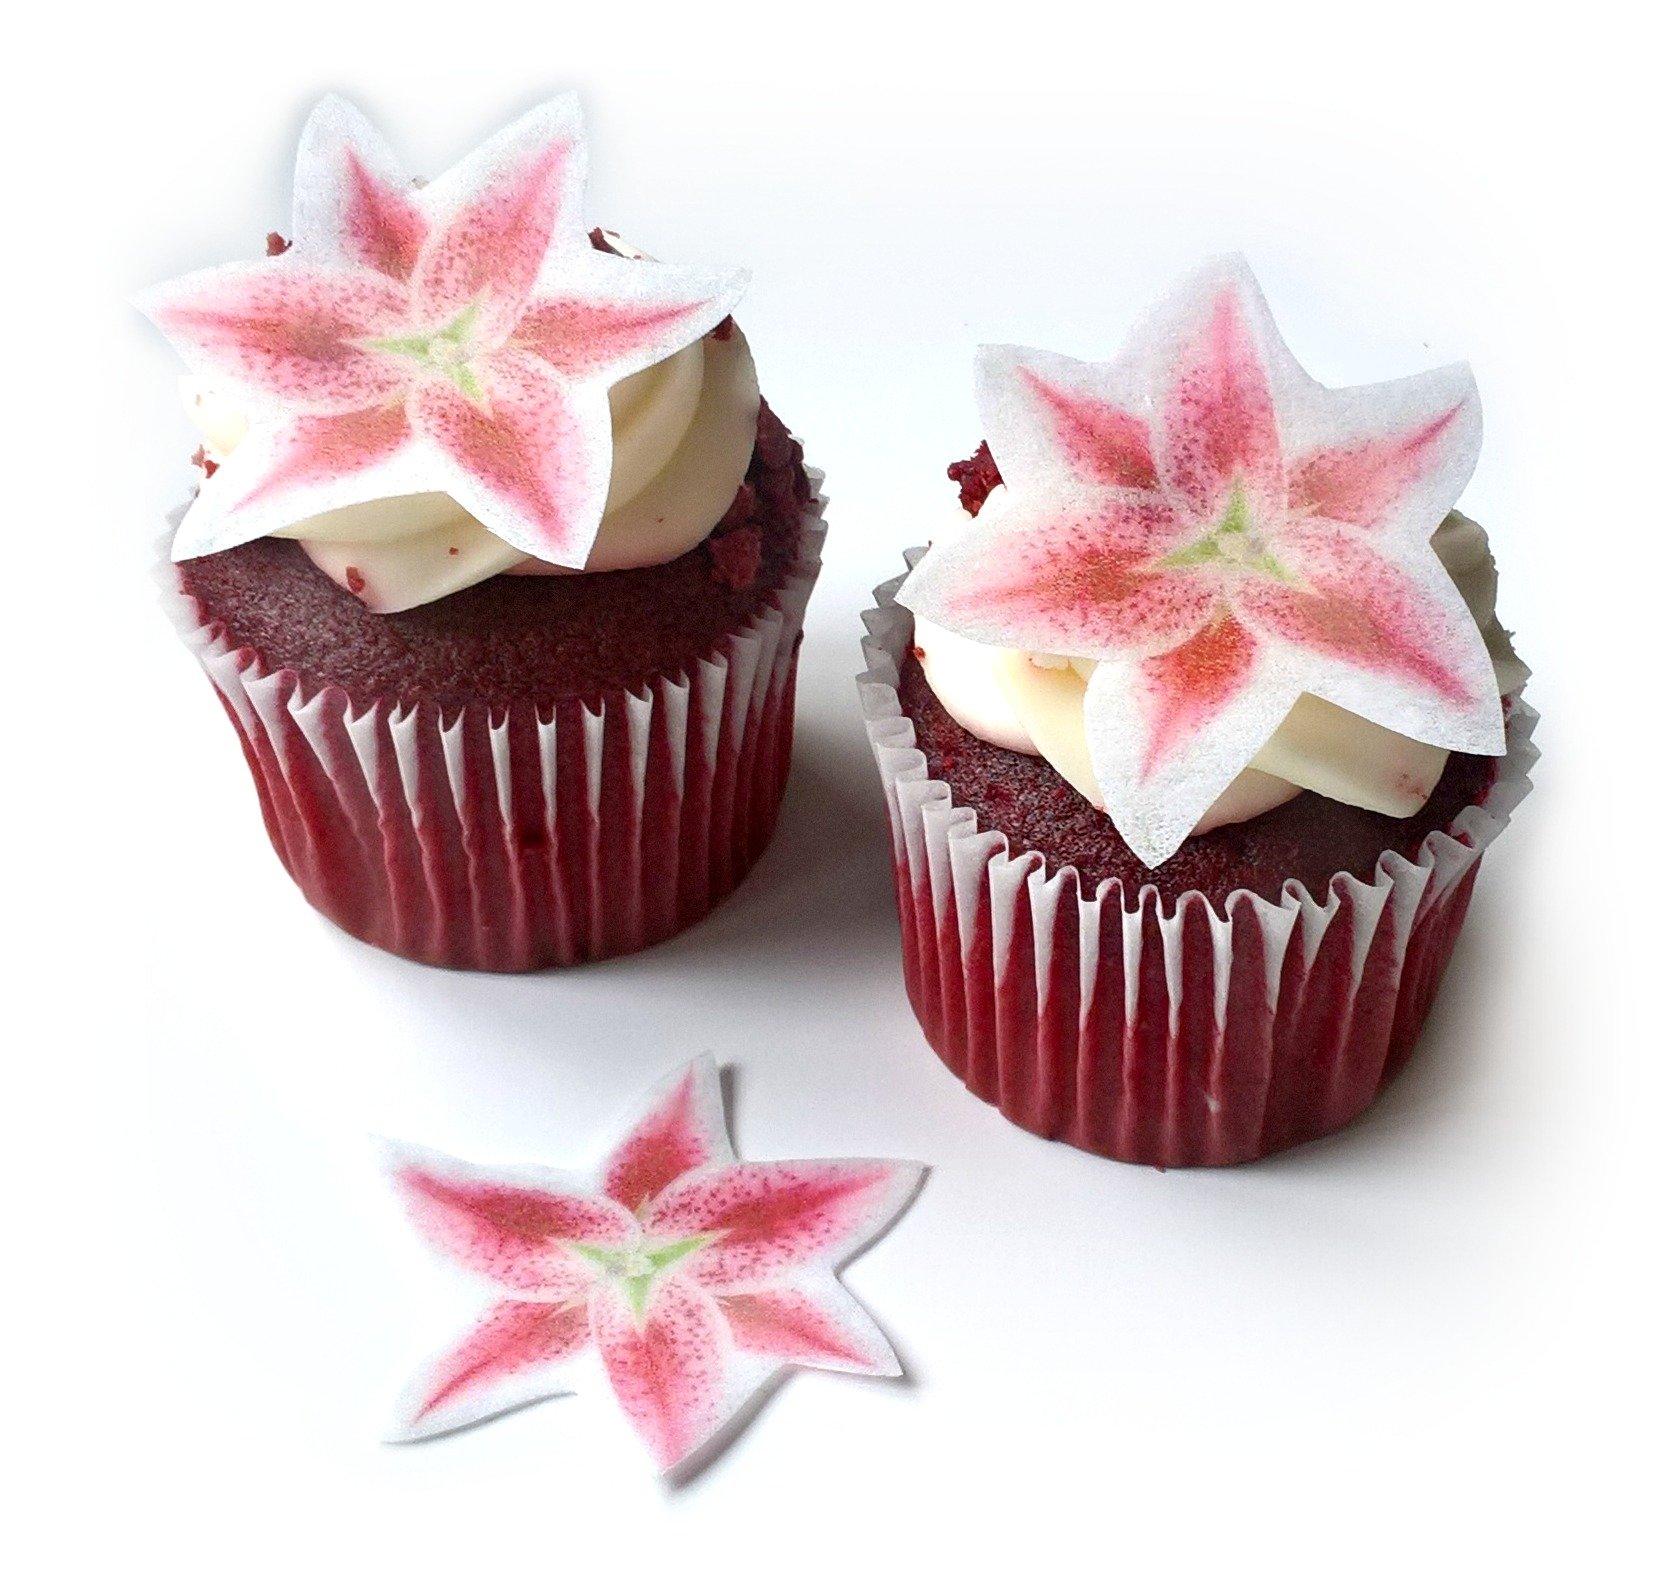 24 Stargazer Lily Flower Flat Edible Wafer Paper Flowers Very Small 1.5'' Flower Cake Cupcake Toppers Decoration